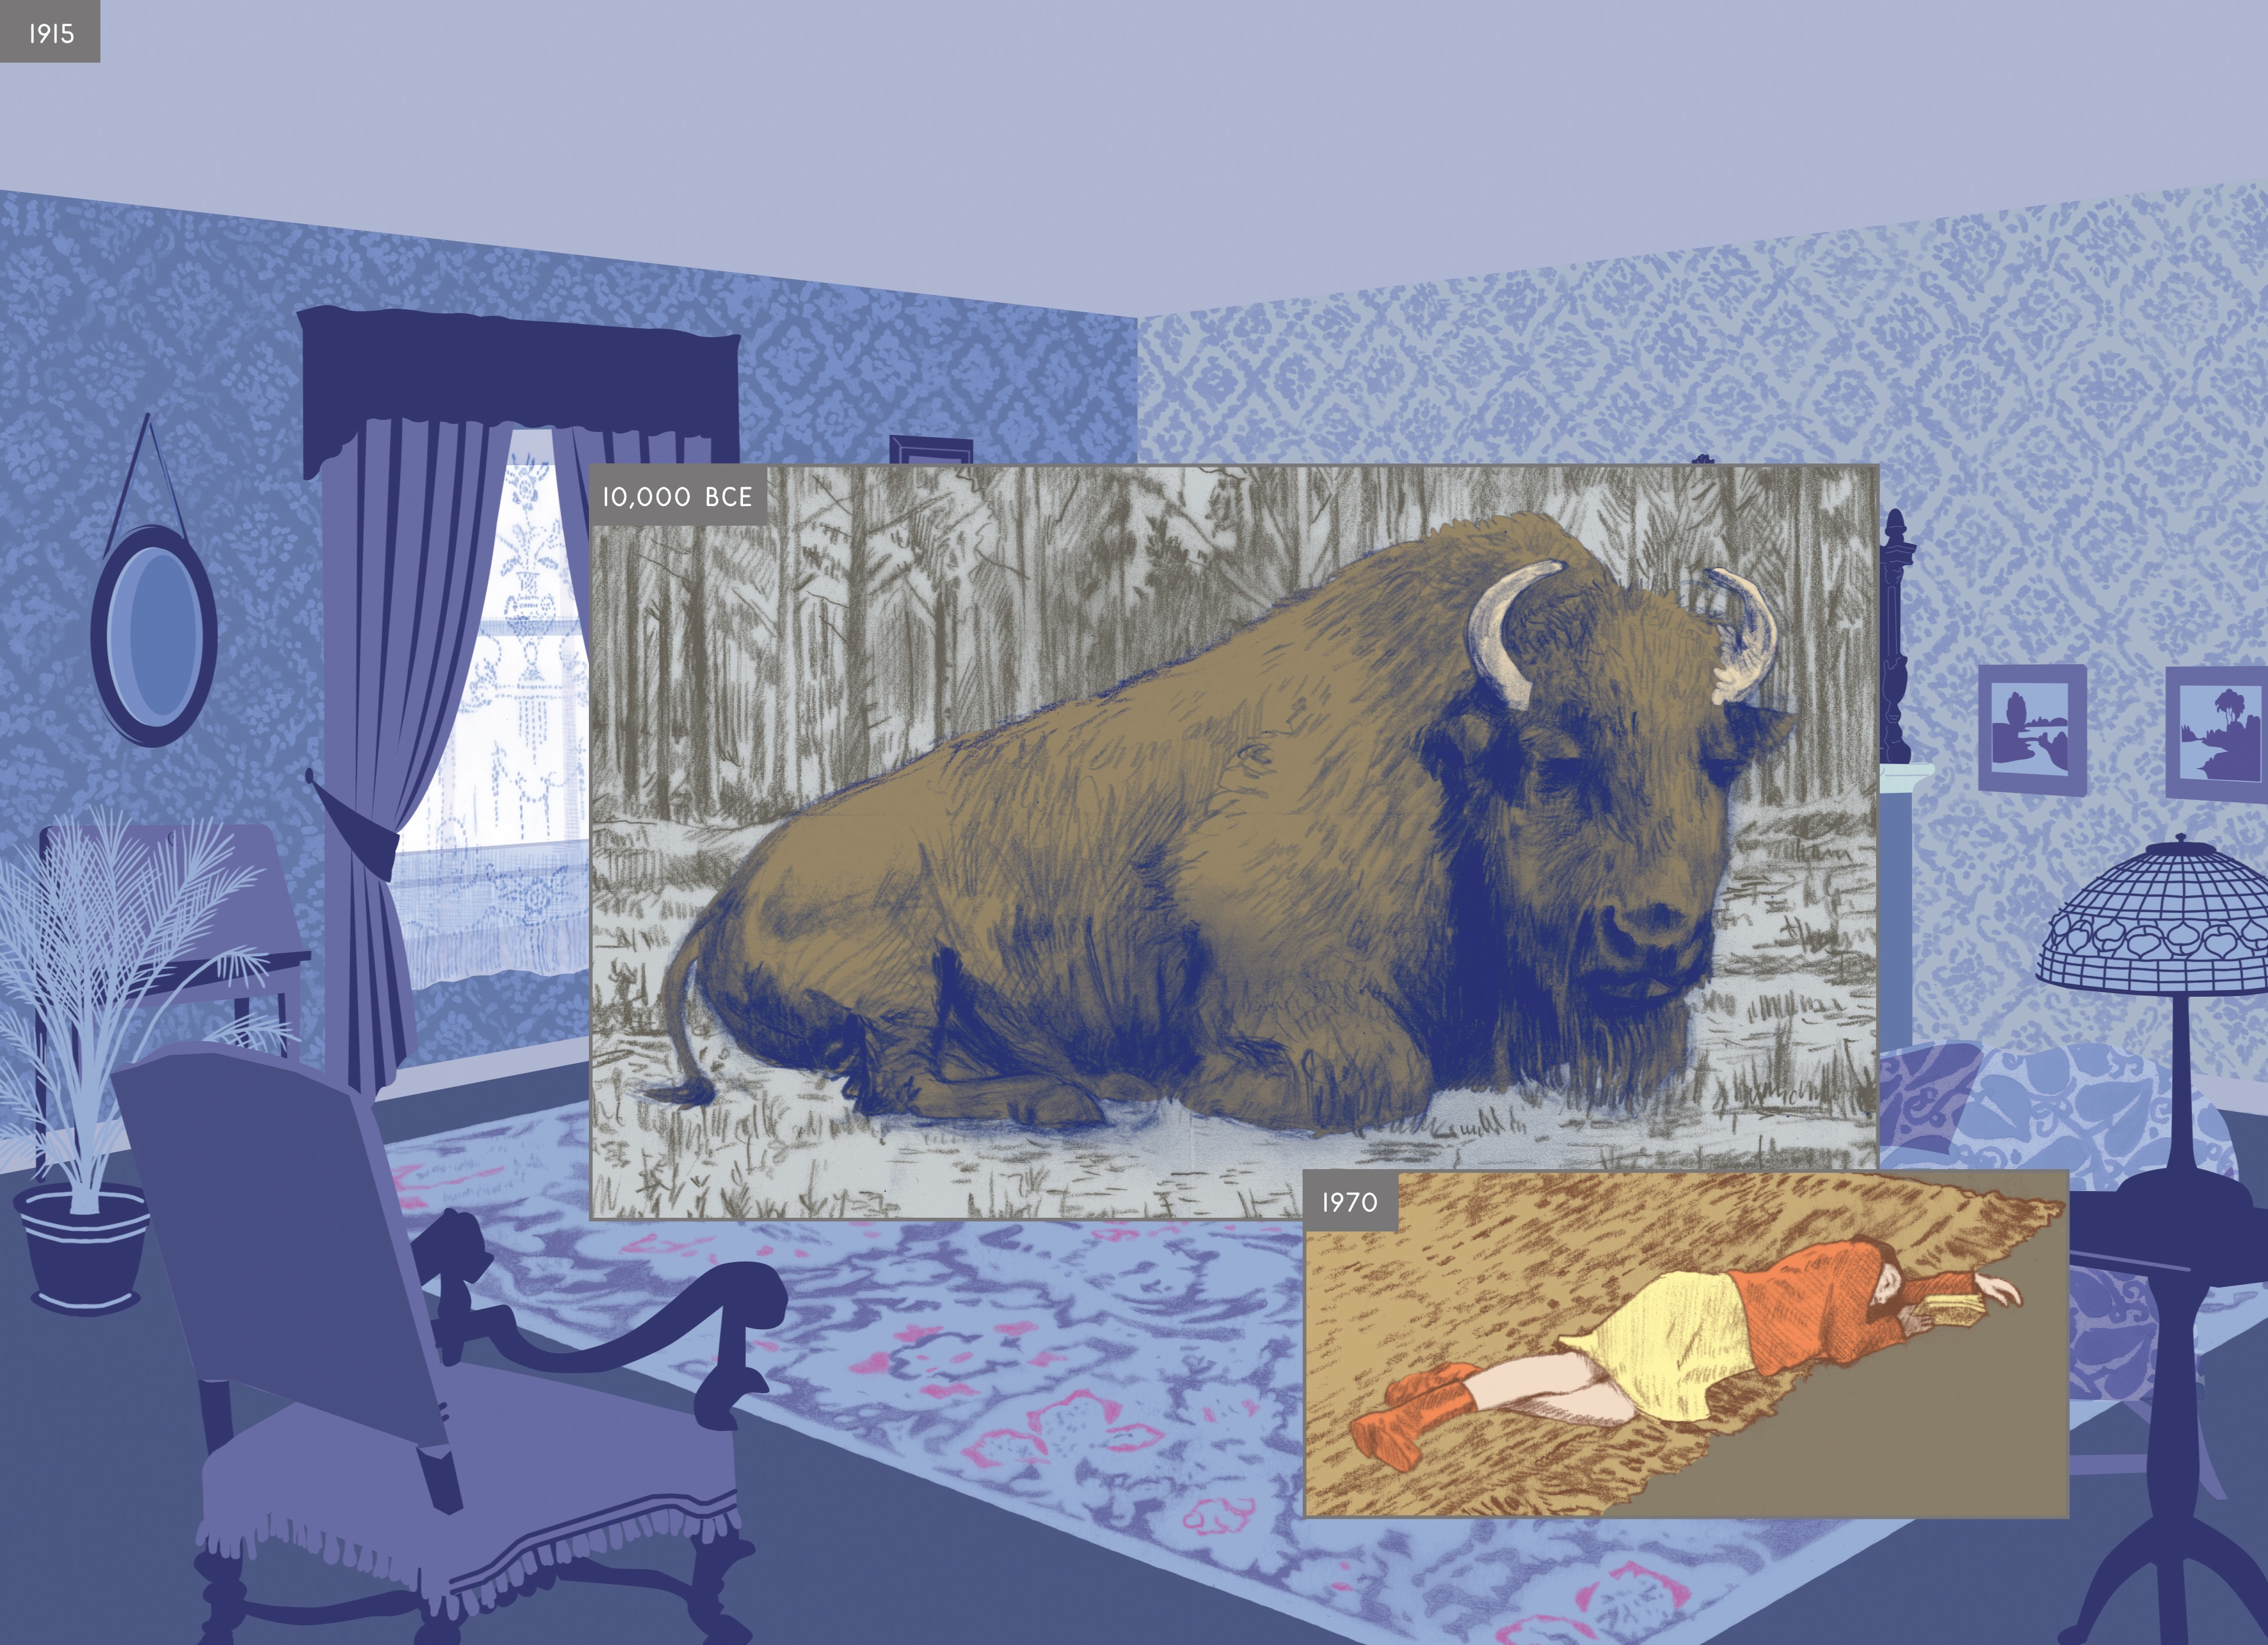 Richard McGuire on Here His Groundbreaking Graphic Novel